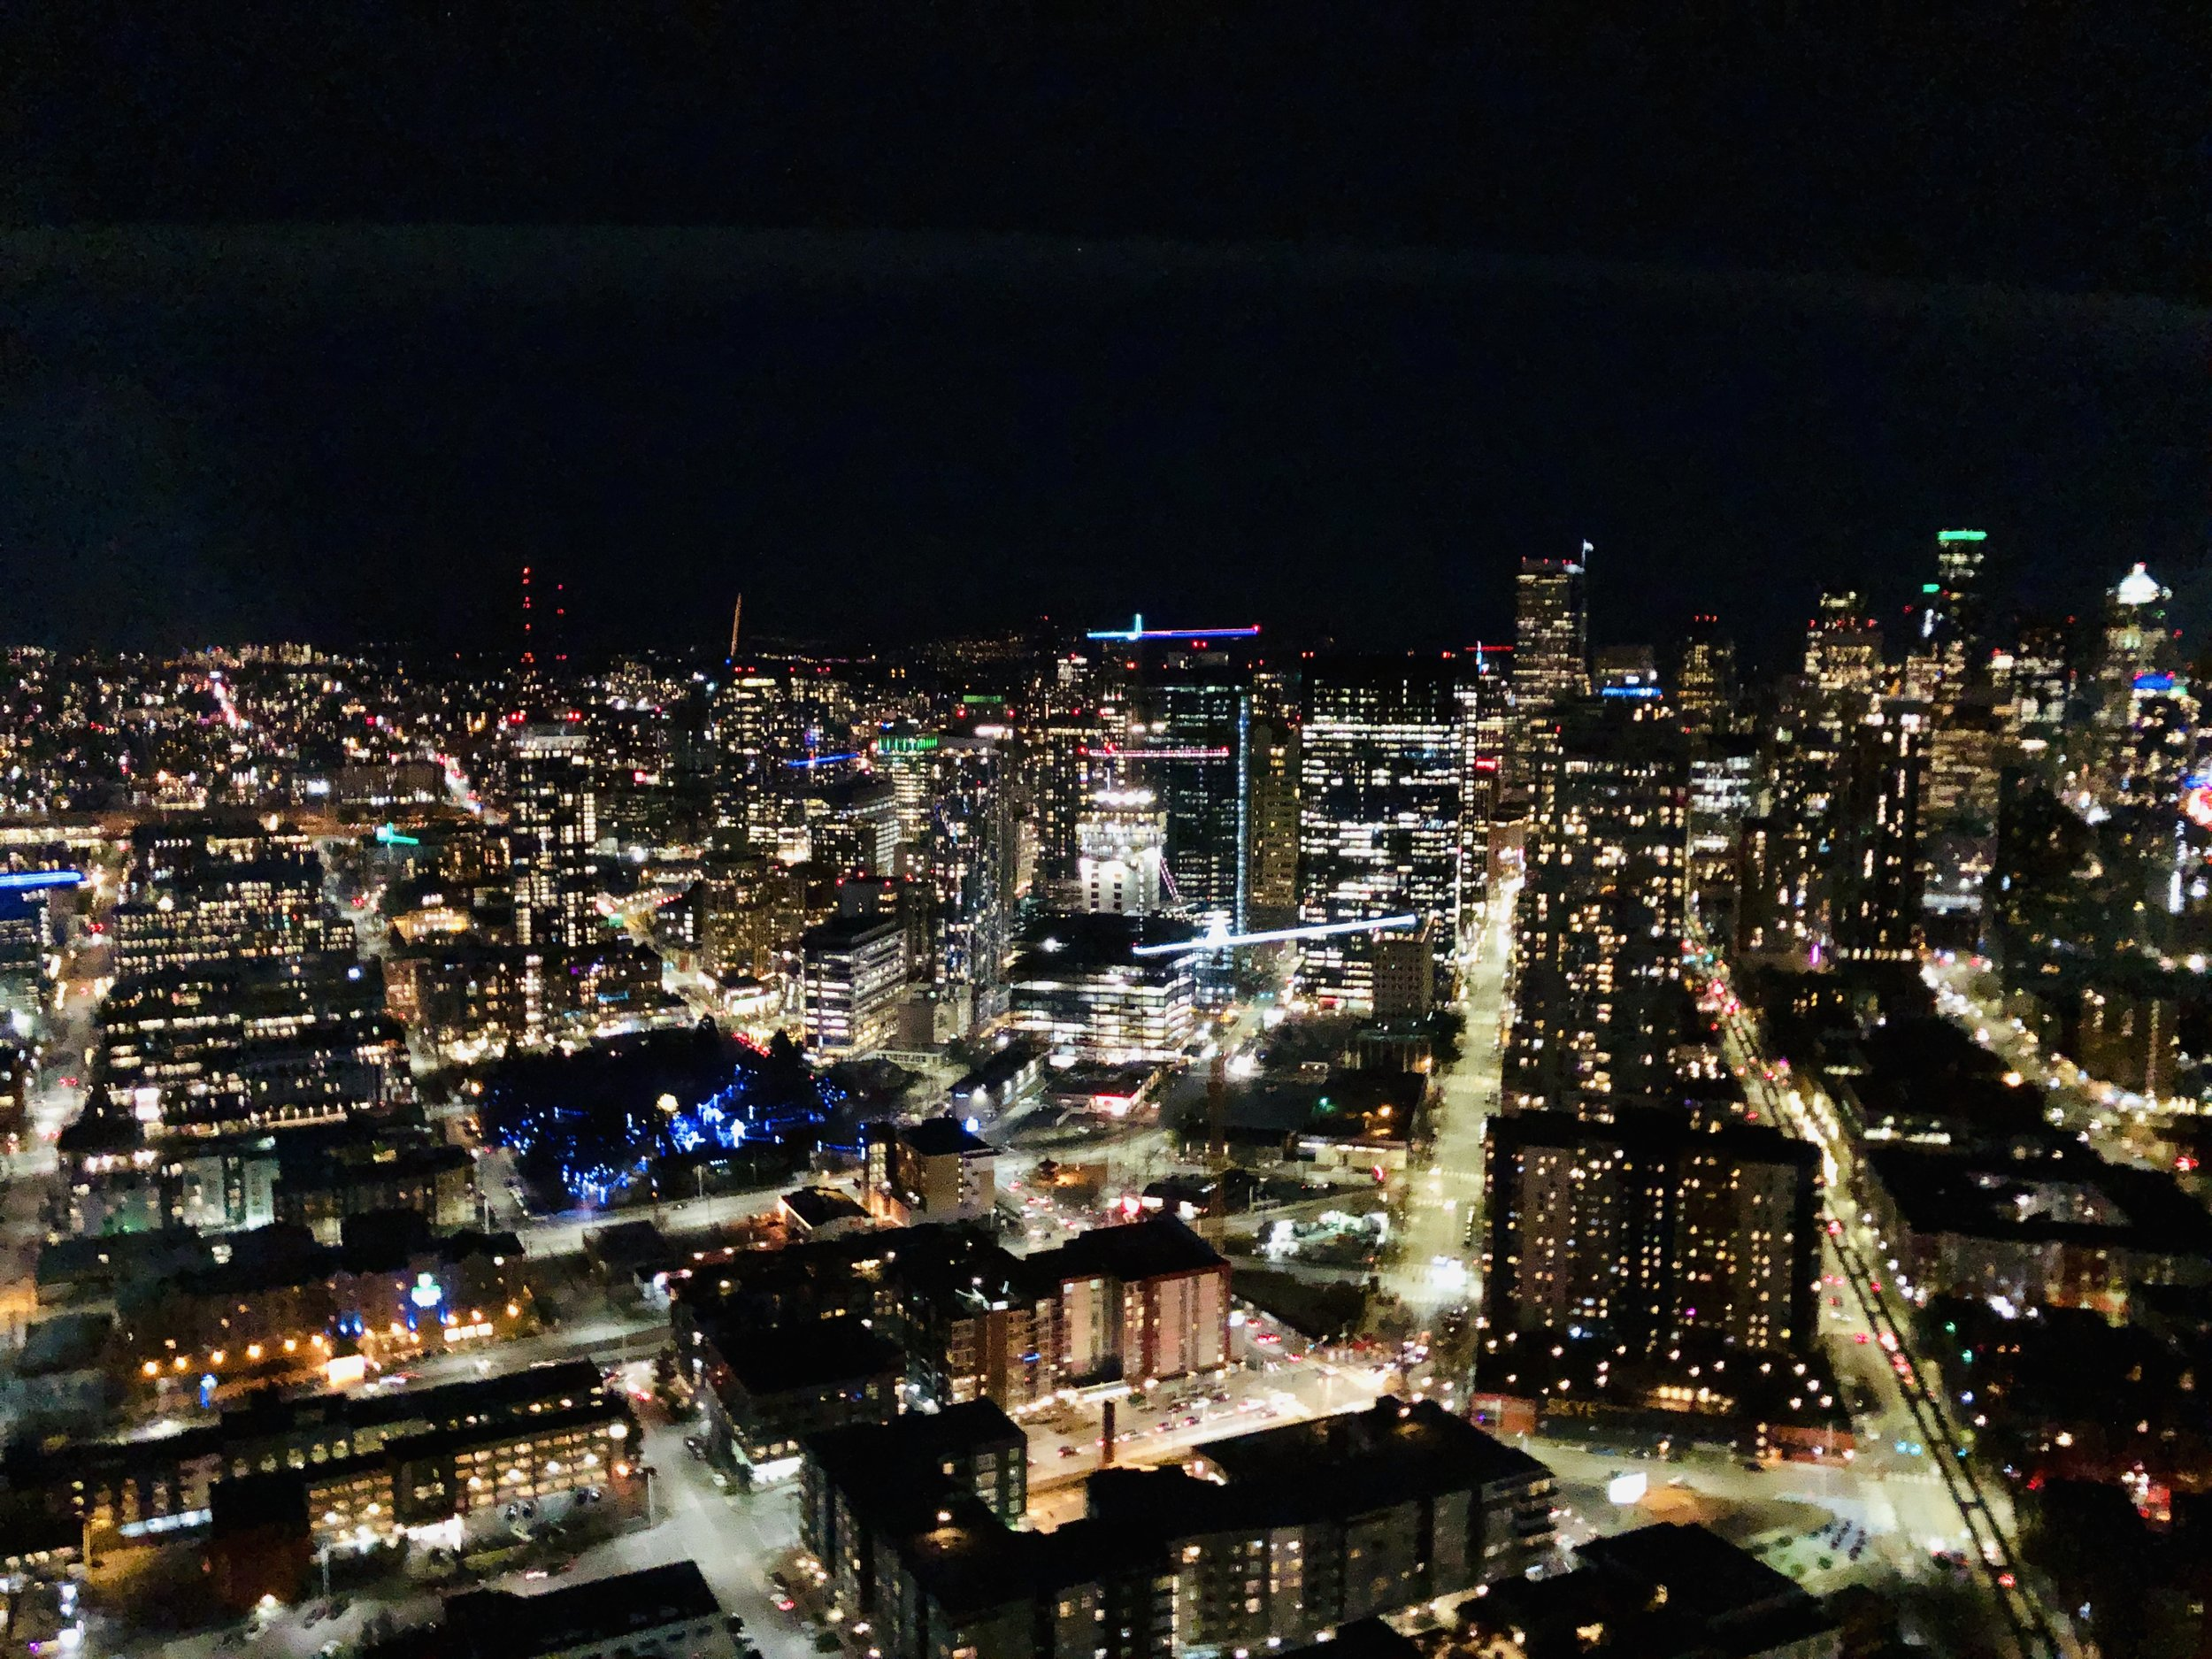 View from the Space Needle.